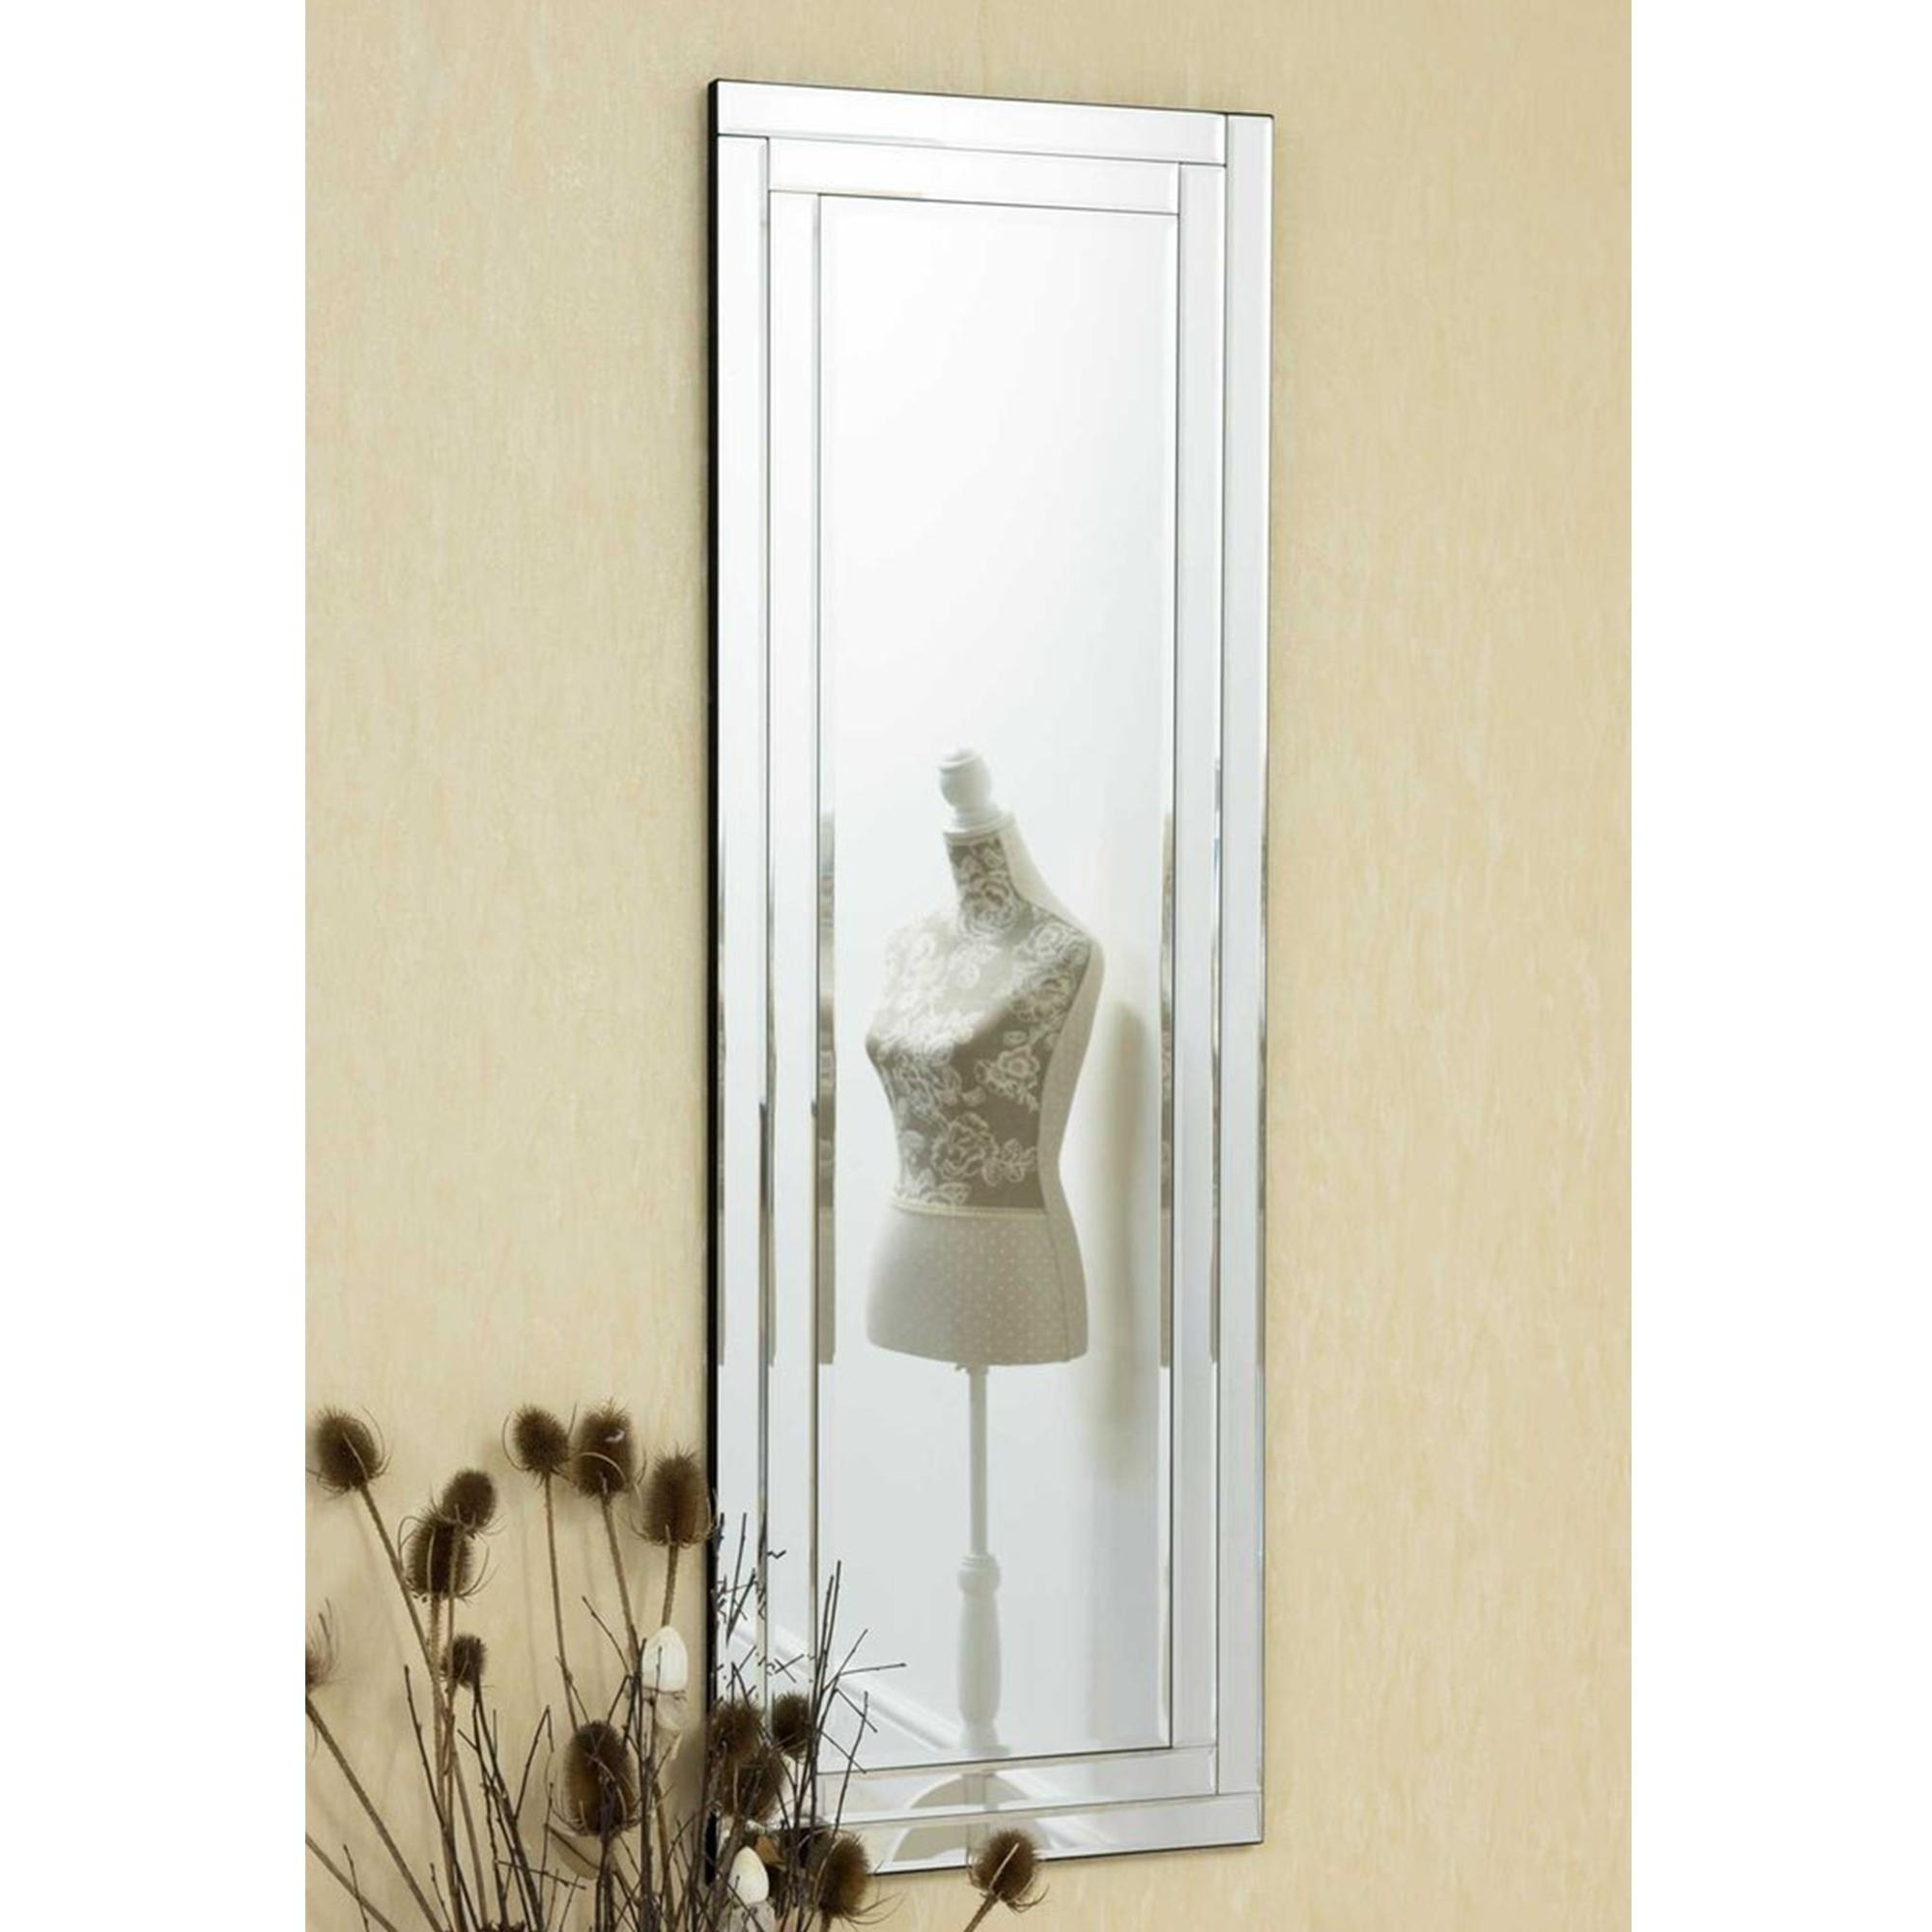 Full Length Luxington Venetian Mirror | Decorative Glass Mirrors With Full Length Venetian Mirror (Image 9 of 20)